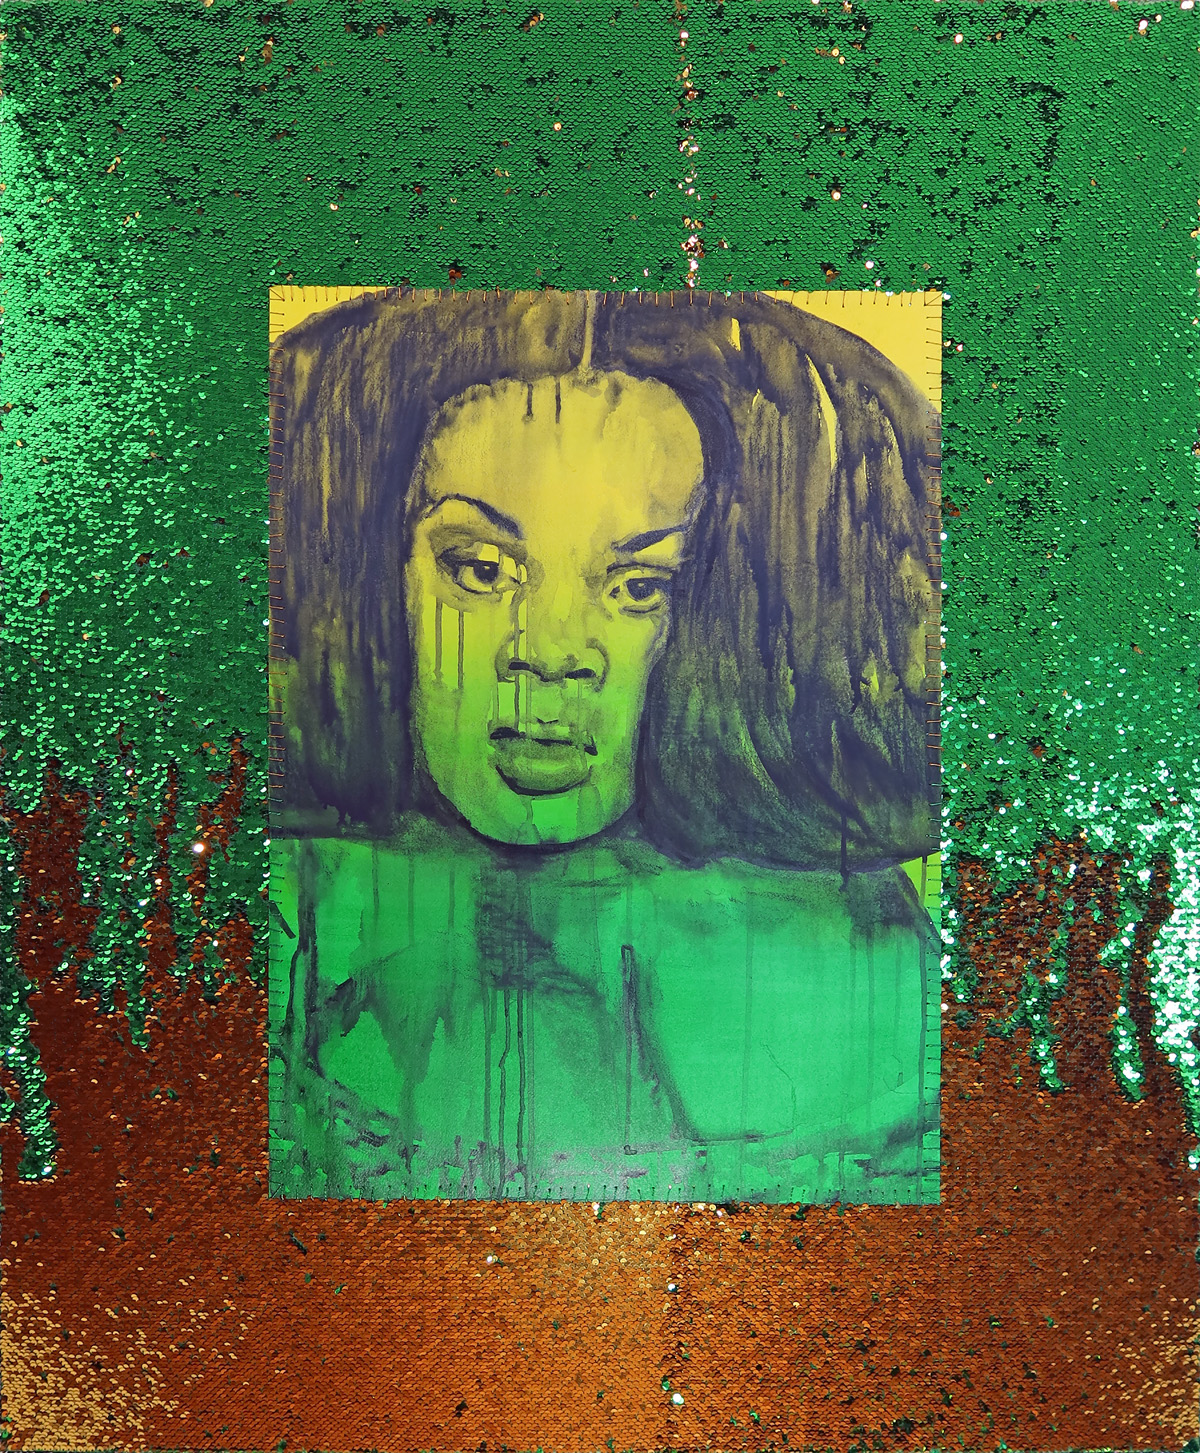 April Bey, <em>Jervae From The Gilda Region (Green and Gold)</em>, 2020. Courtesy the artist and GAVLAK Los Angeles / Palm Beach.